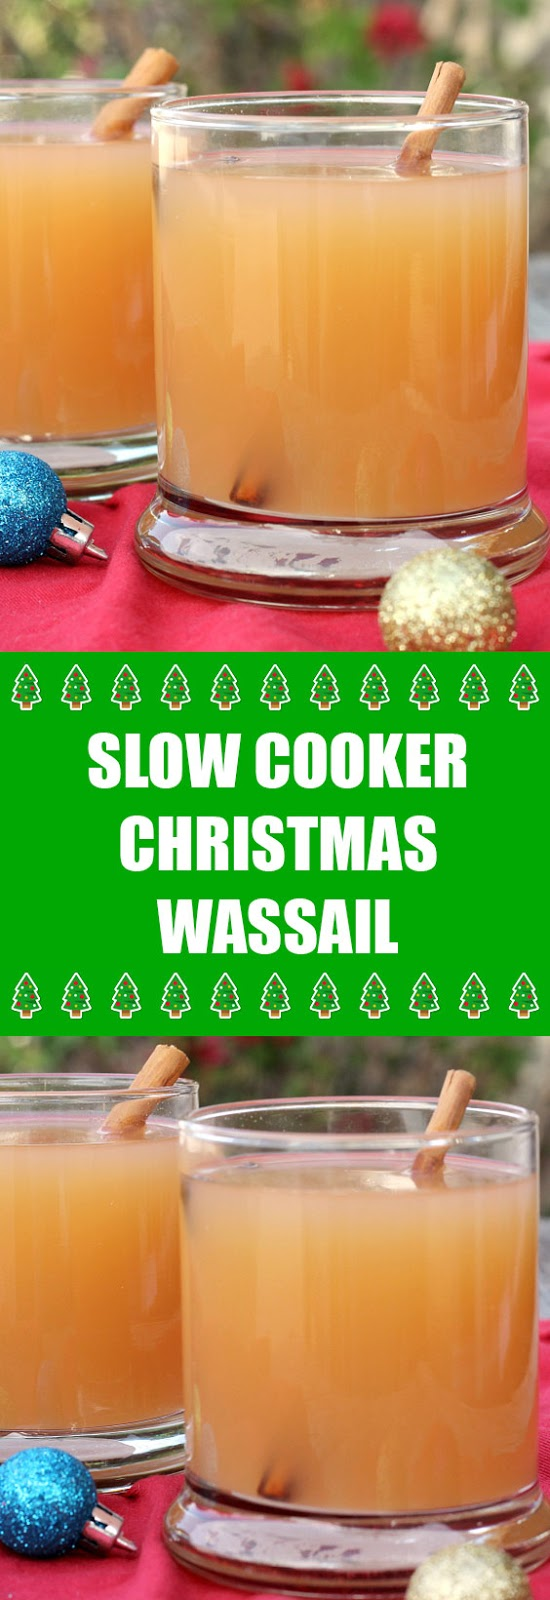 Slow Cooker Christmas Wassail